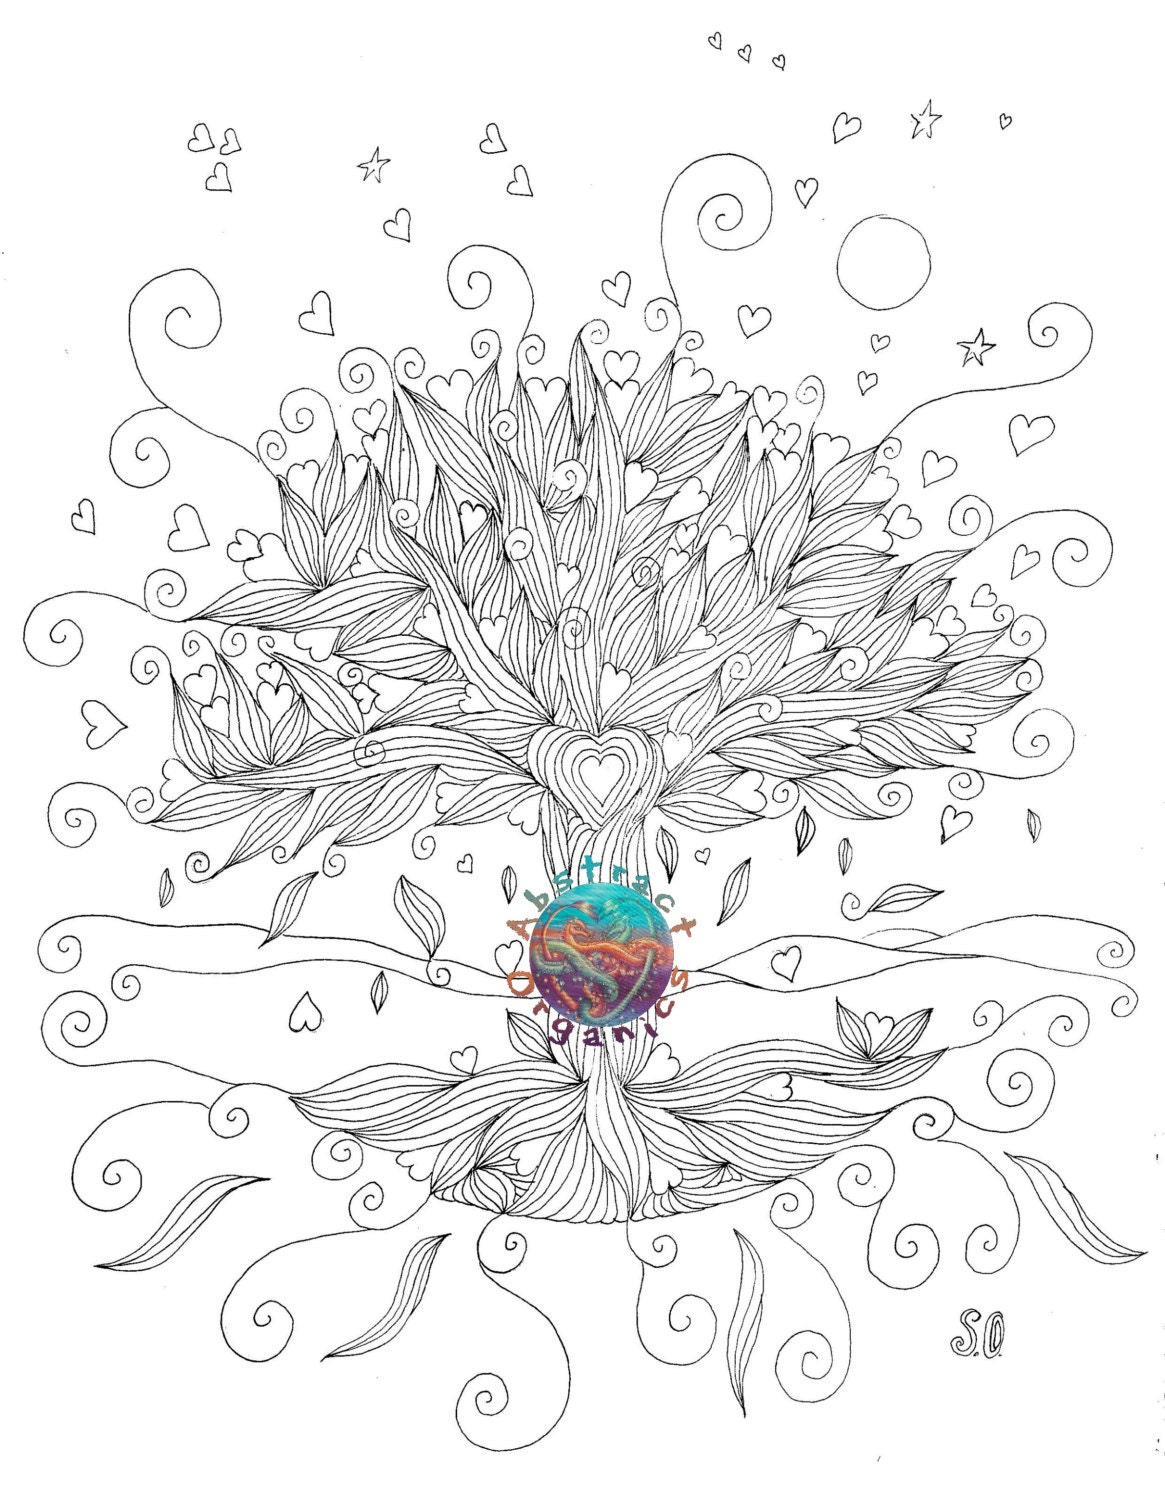 Coloring pages for adults tree - Tree Of Life Colouring Pdf Download Adult Colouring Tree Of Love Colouring Page